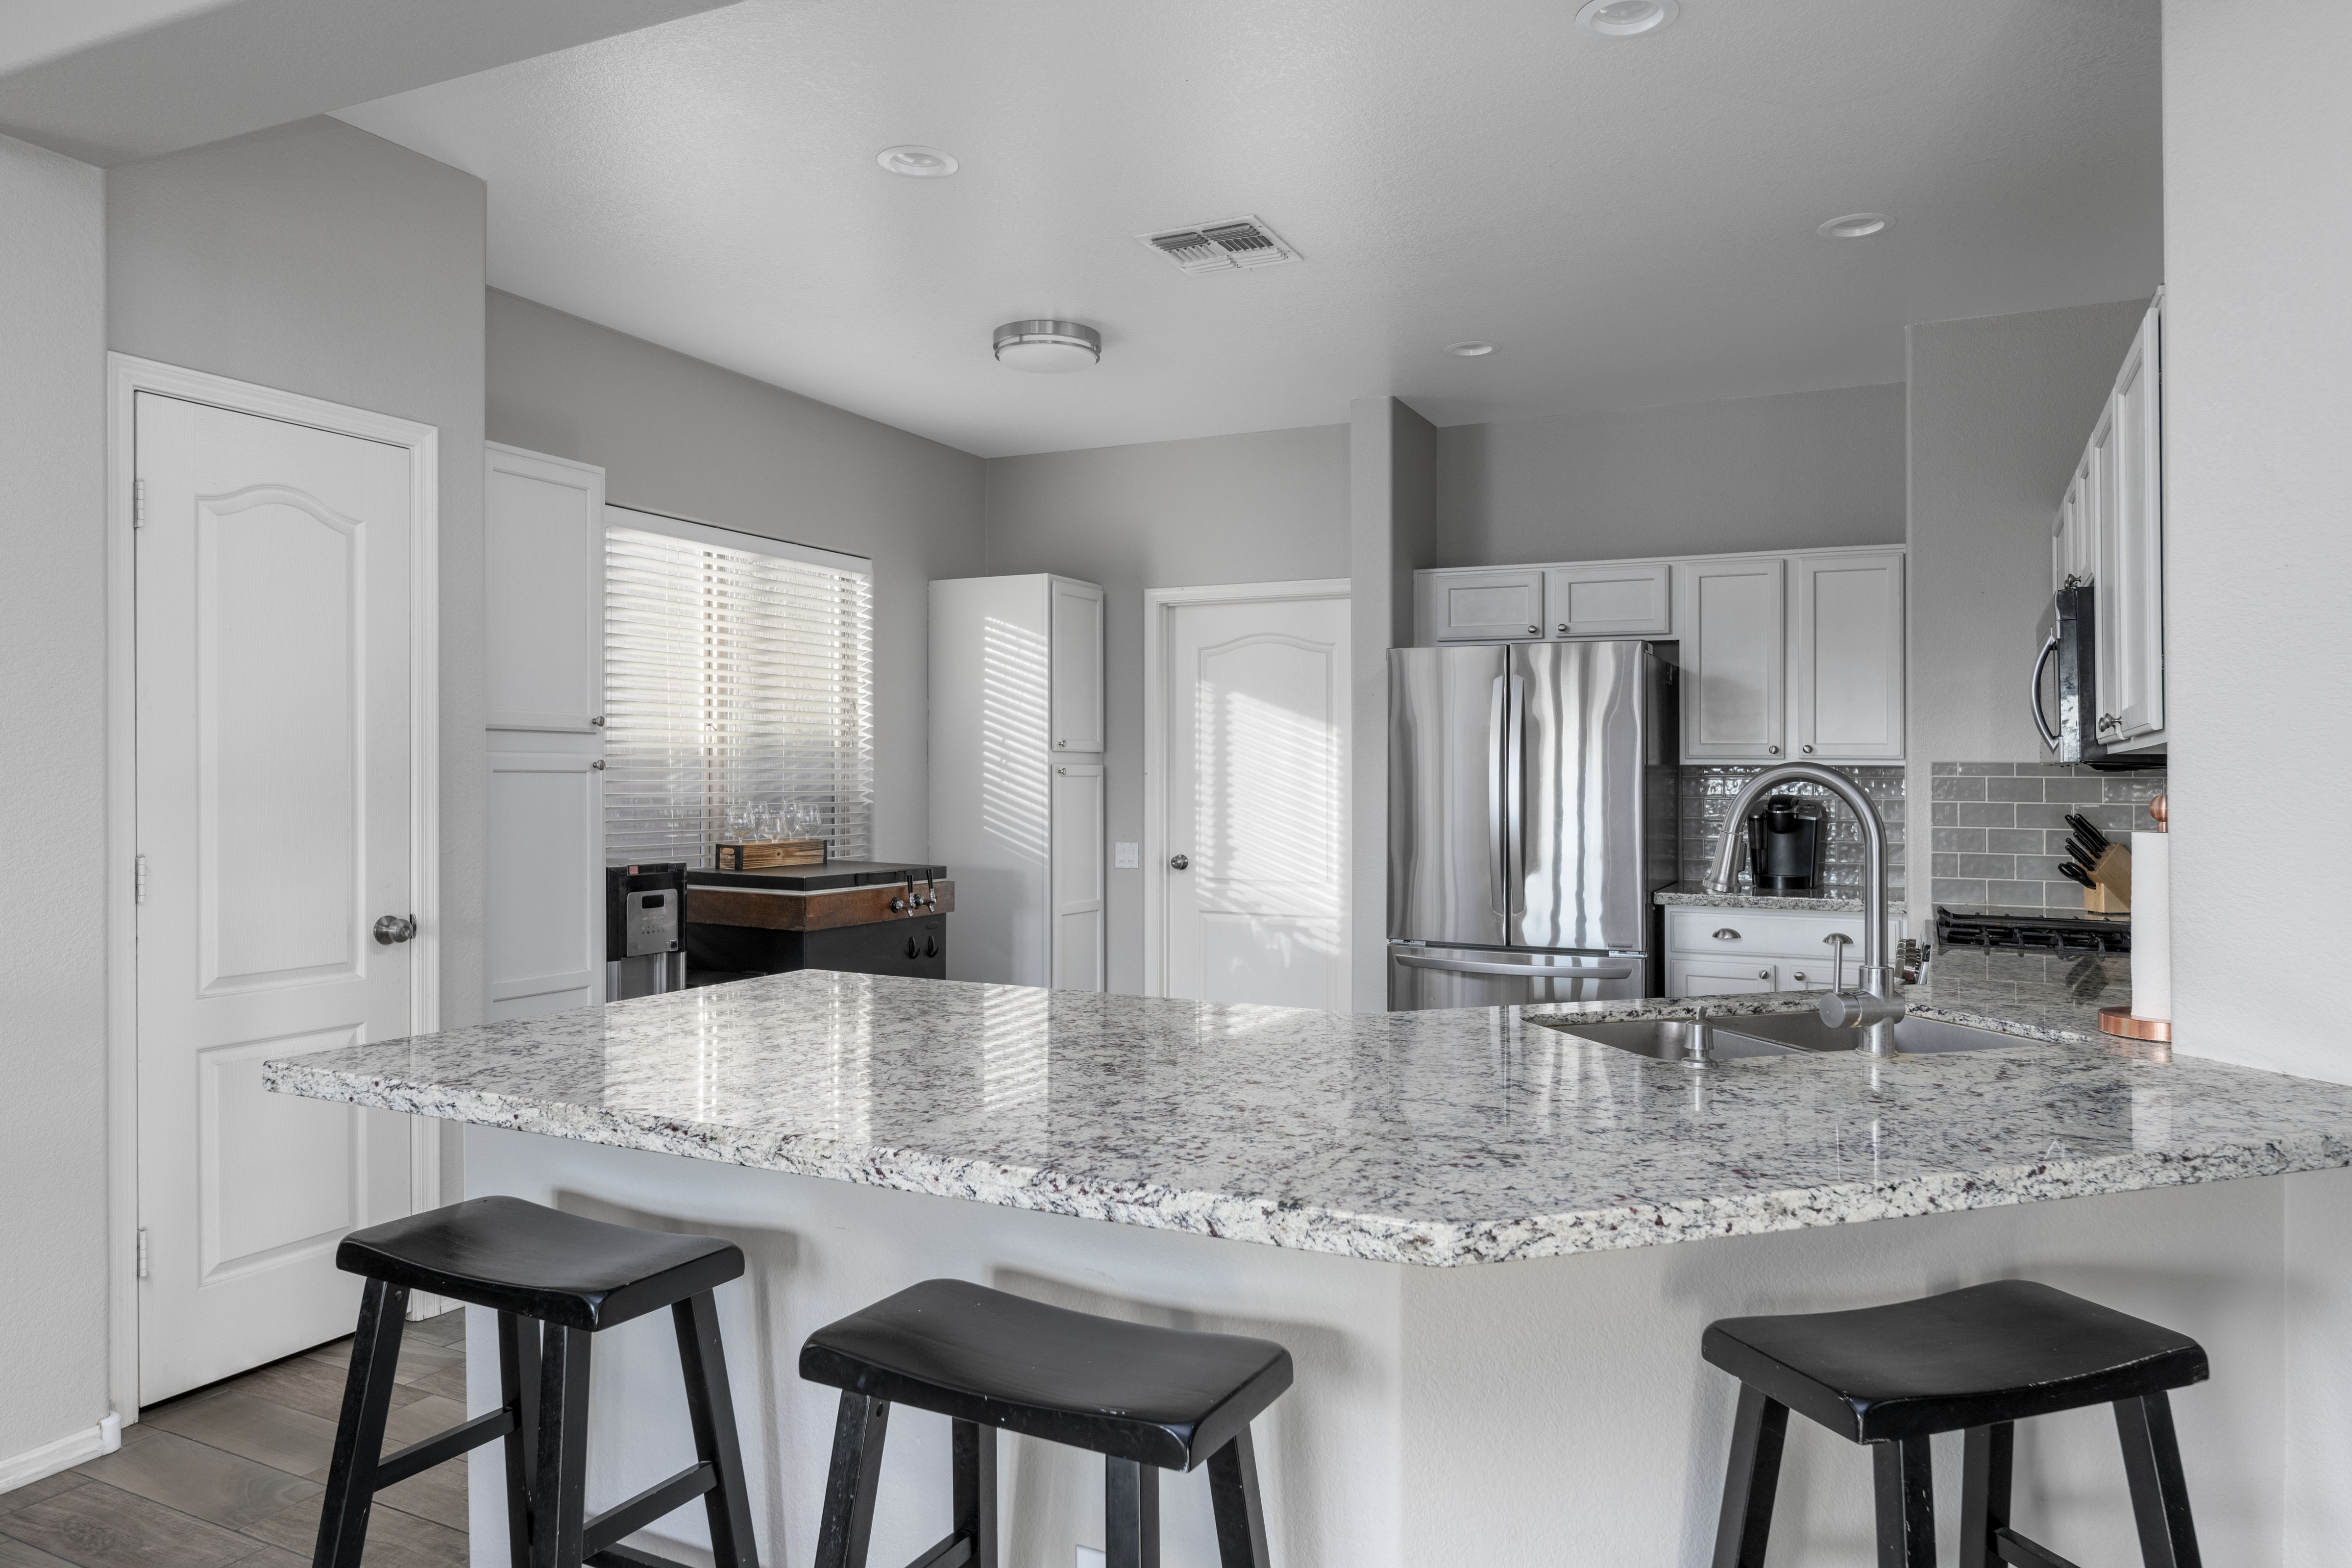 How to Gut a Kitchen for a Kitchen Remodel